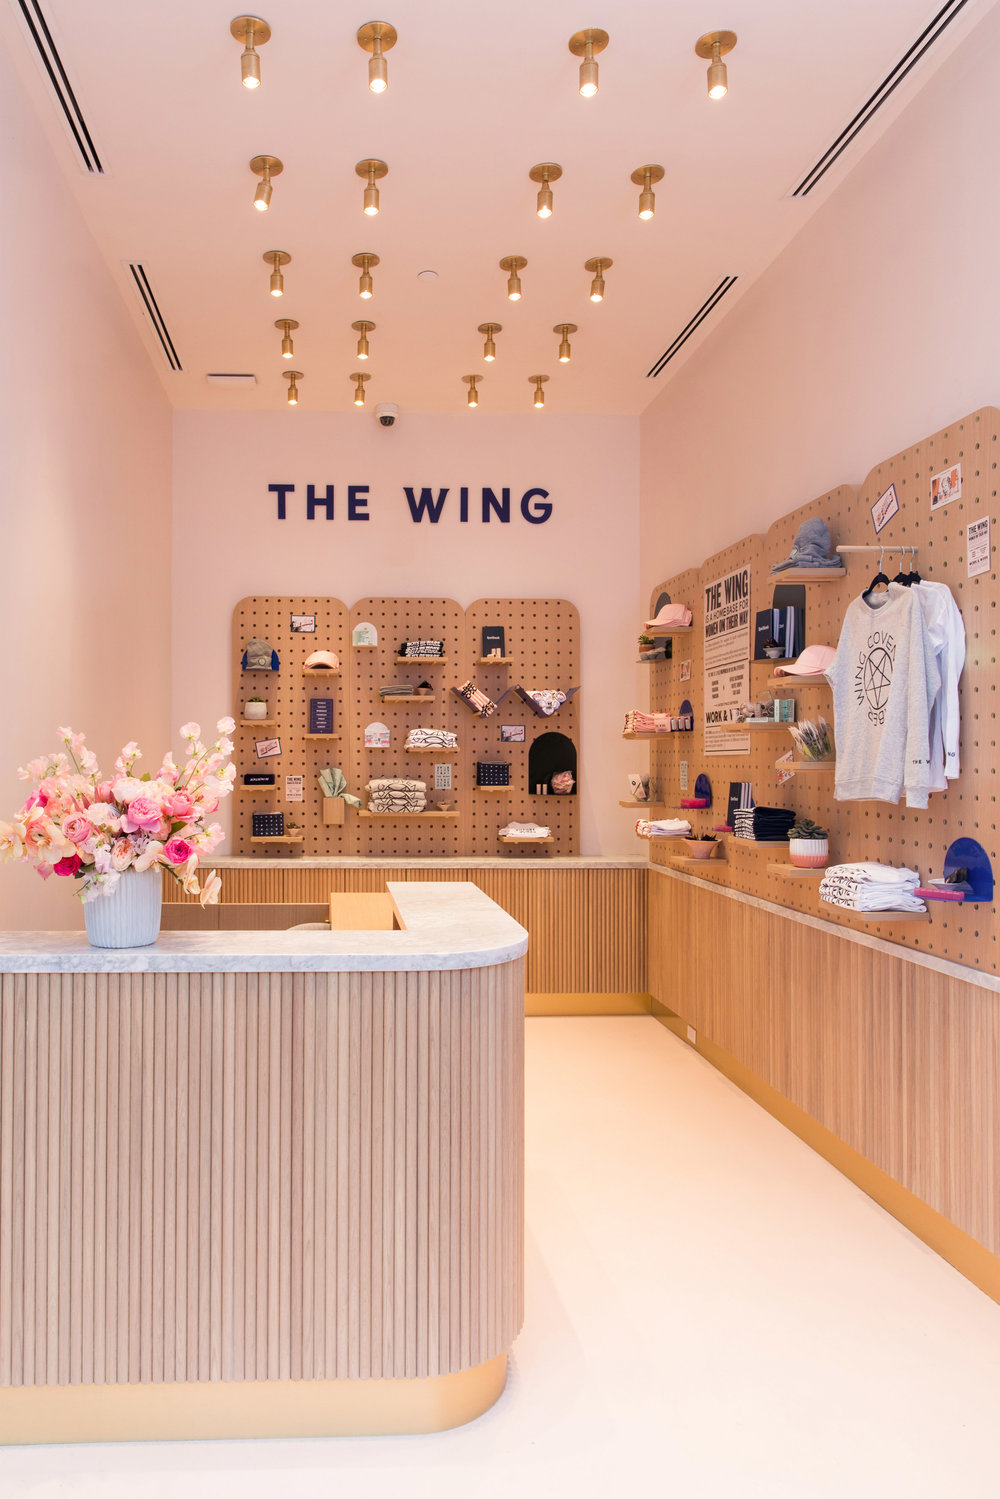 The checkout and retail area of The Wing Dumbo, featuring brand merchandise mounted on a pegboard. MEP Engineering provided by 2LS Consulting Engineering.